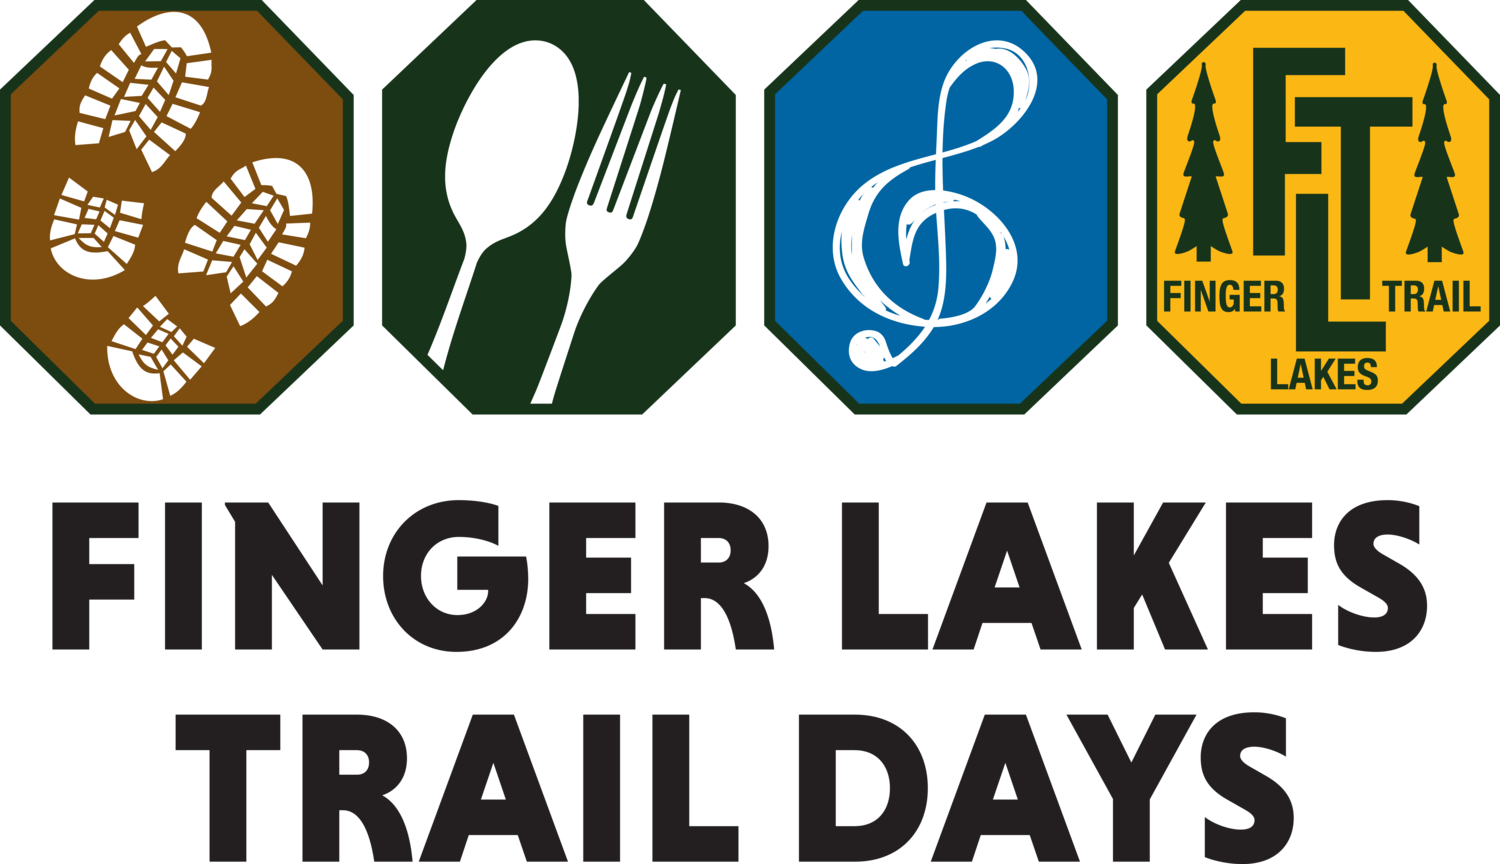 Finger Lakes Trail Days